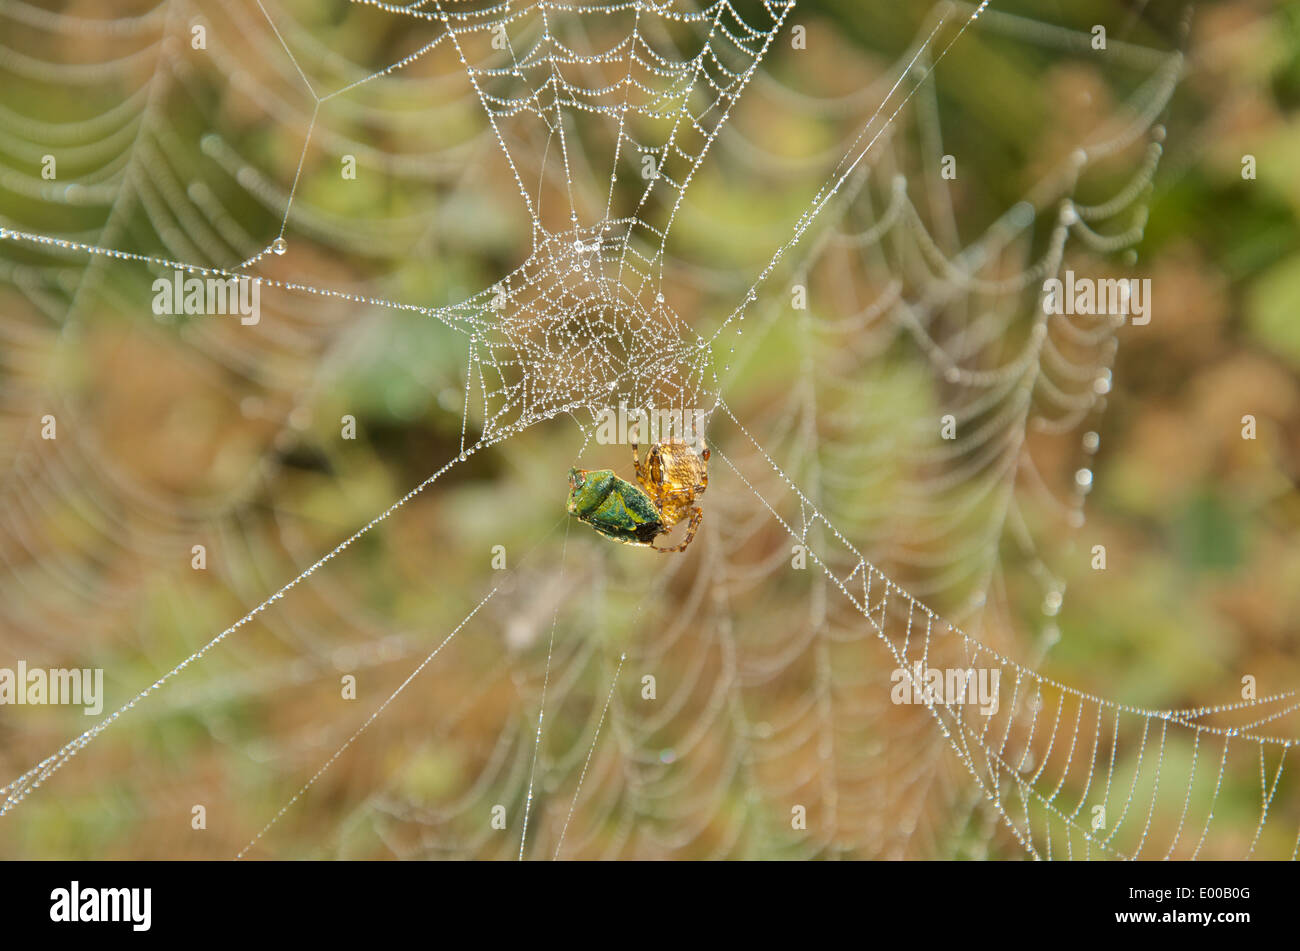 Garden spider devours green Shield bug on a partly spun web illuminated with raindrops - Stock Image